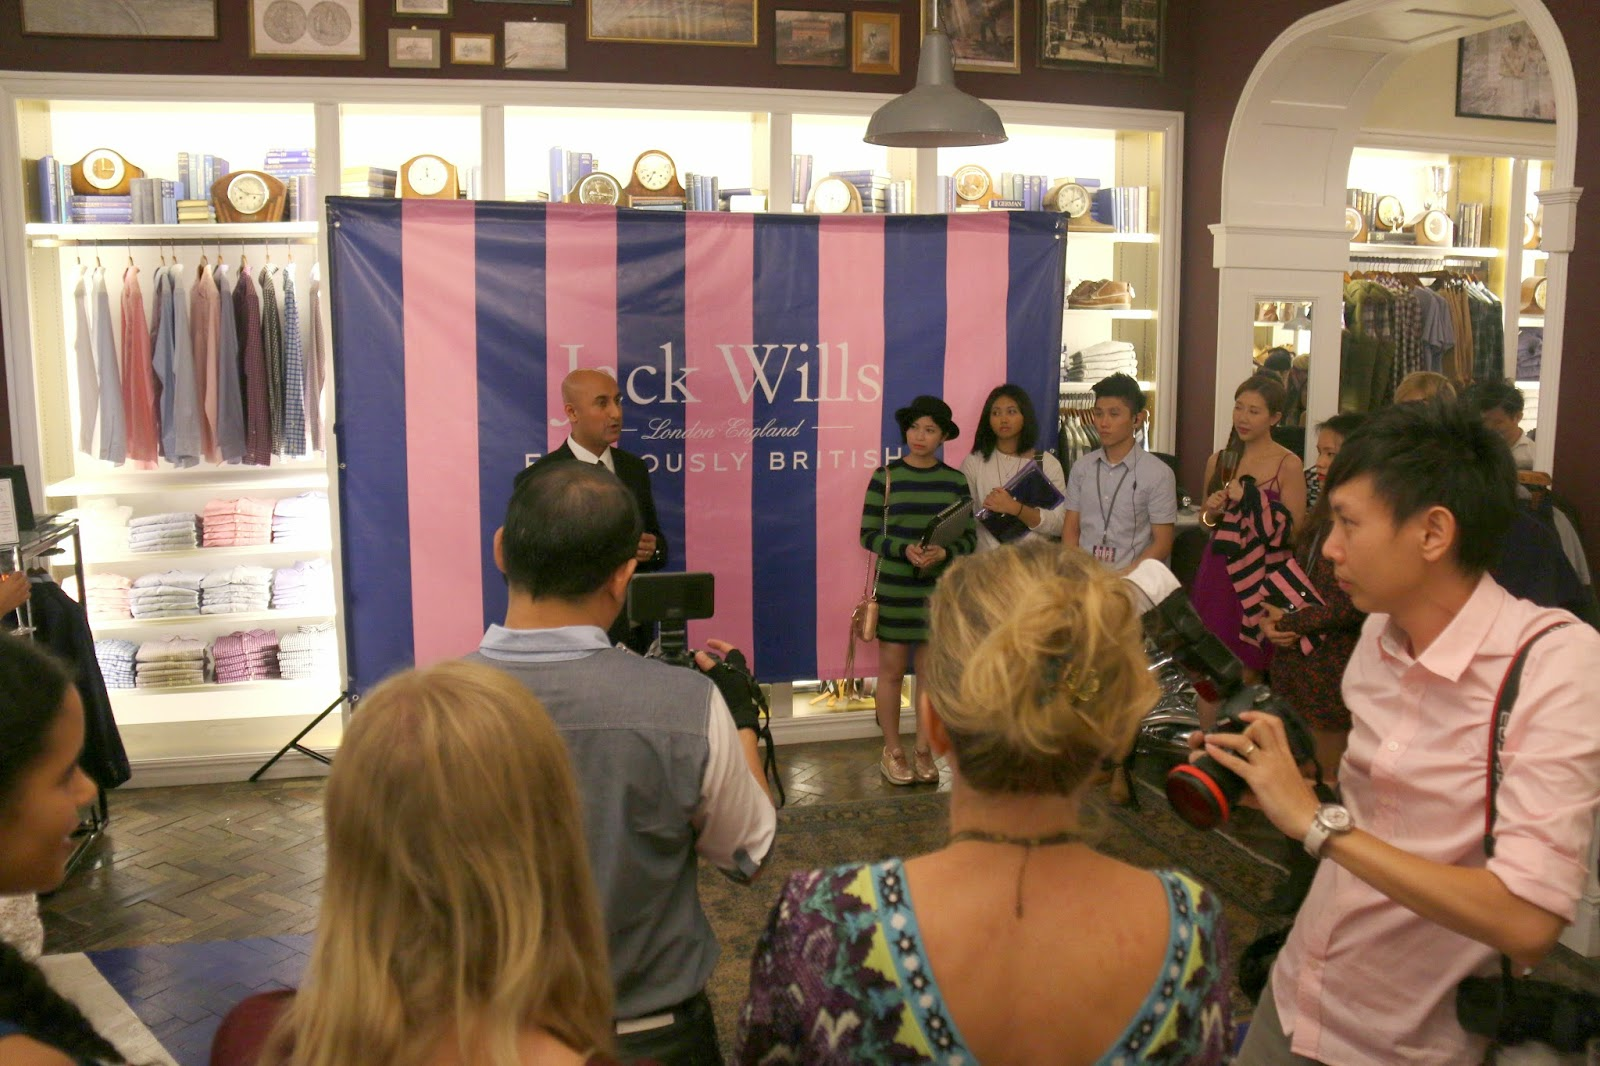 fdf7158377a FABULOUSLY BRITISH: JACK WILLS DEBUTS IN SINGAPORE | OnlyWilliam